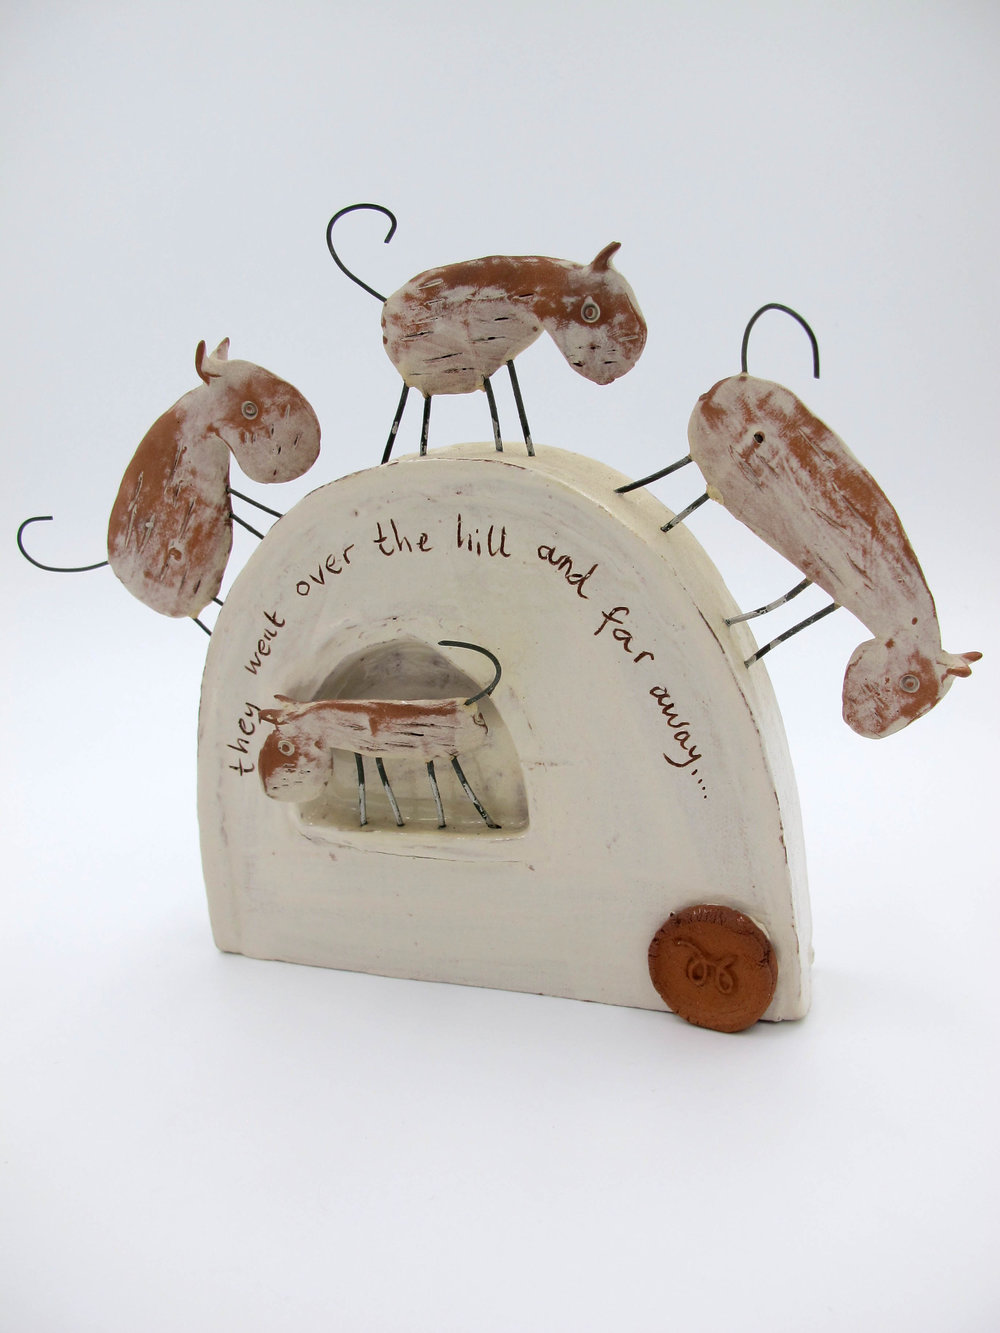 Jane Johnson Ceramics